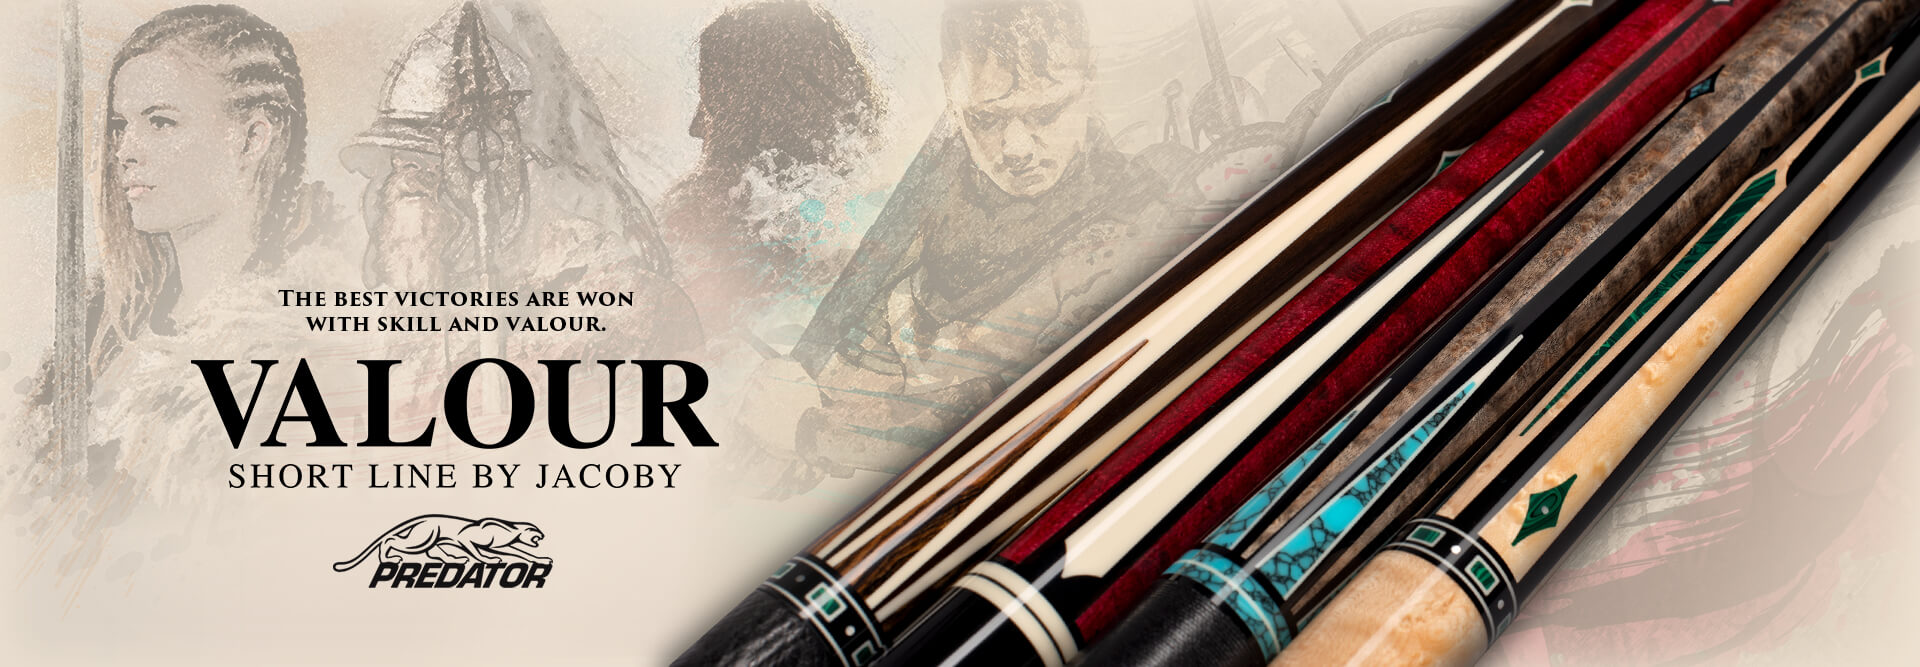 Limited Edition Jacoby Valour Playing Cues